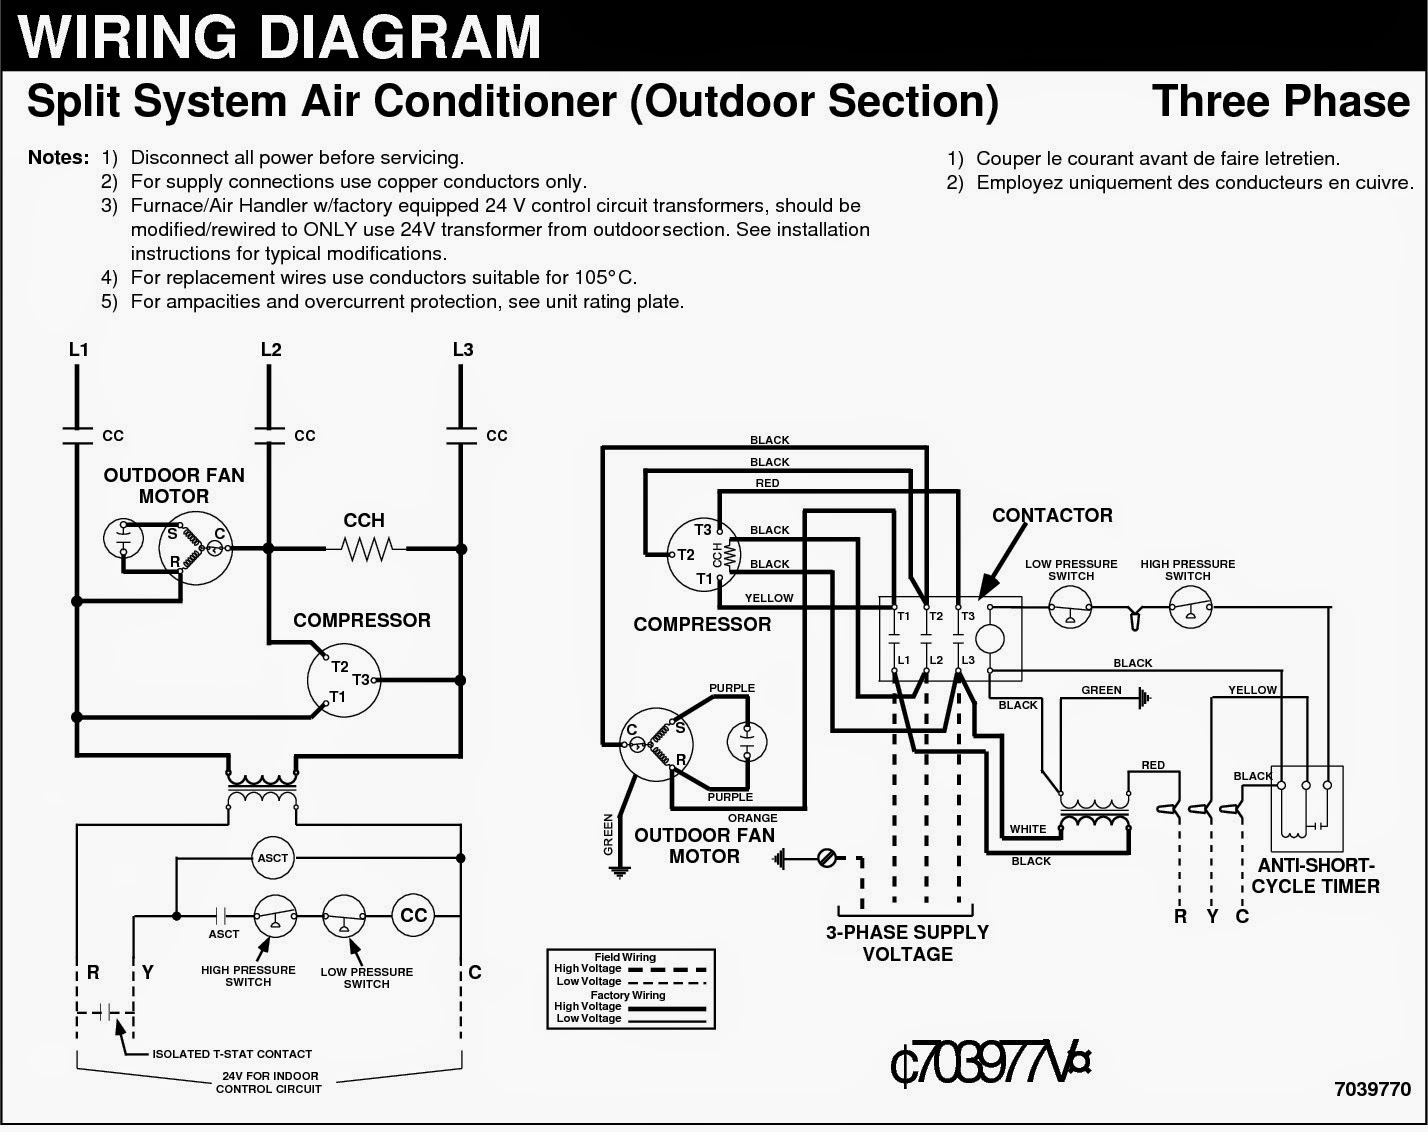 3+phase electrical wiring diagrams for air conditioning systems part two ac wiring diagram at love-stories.co